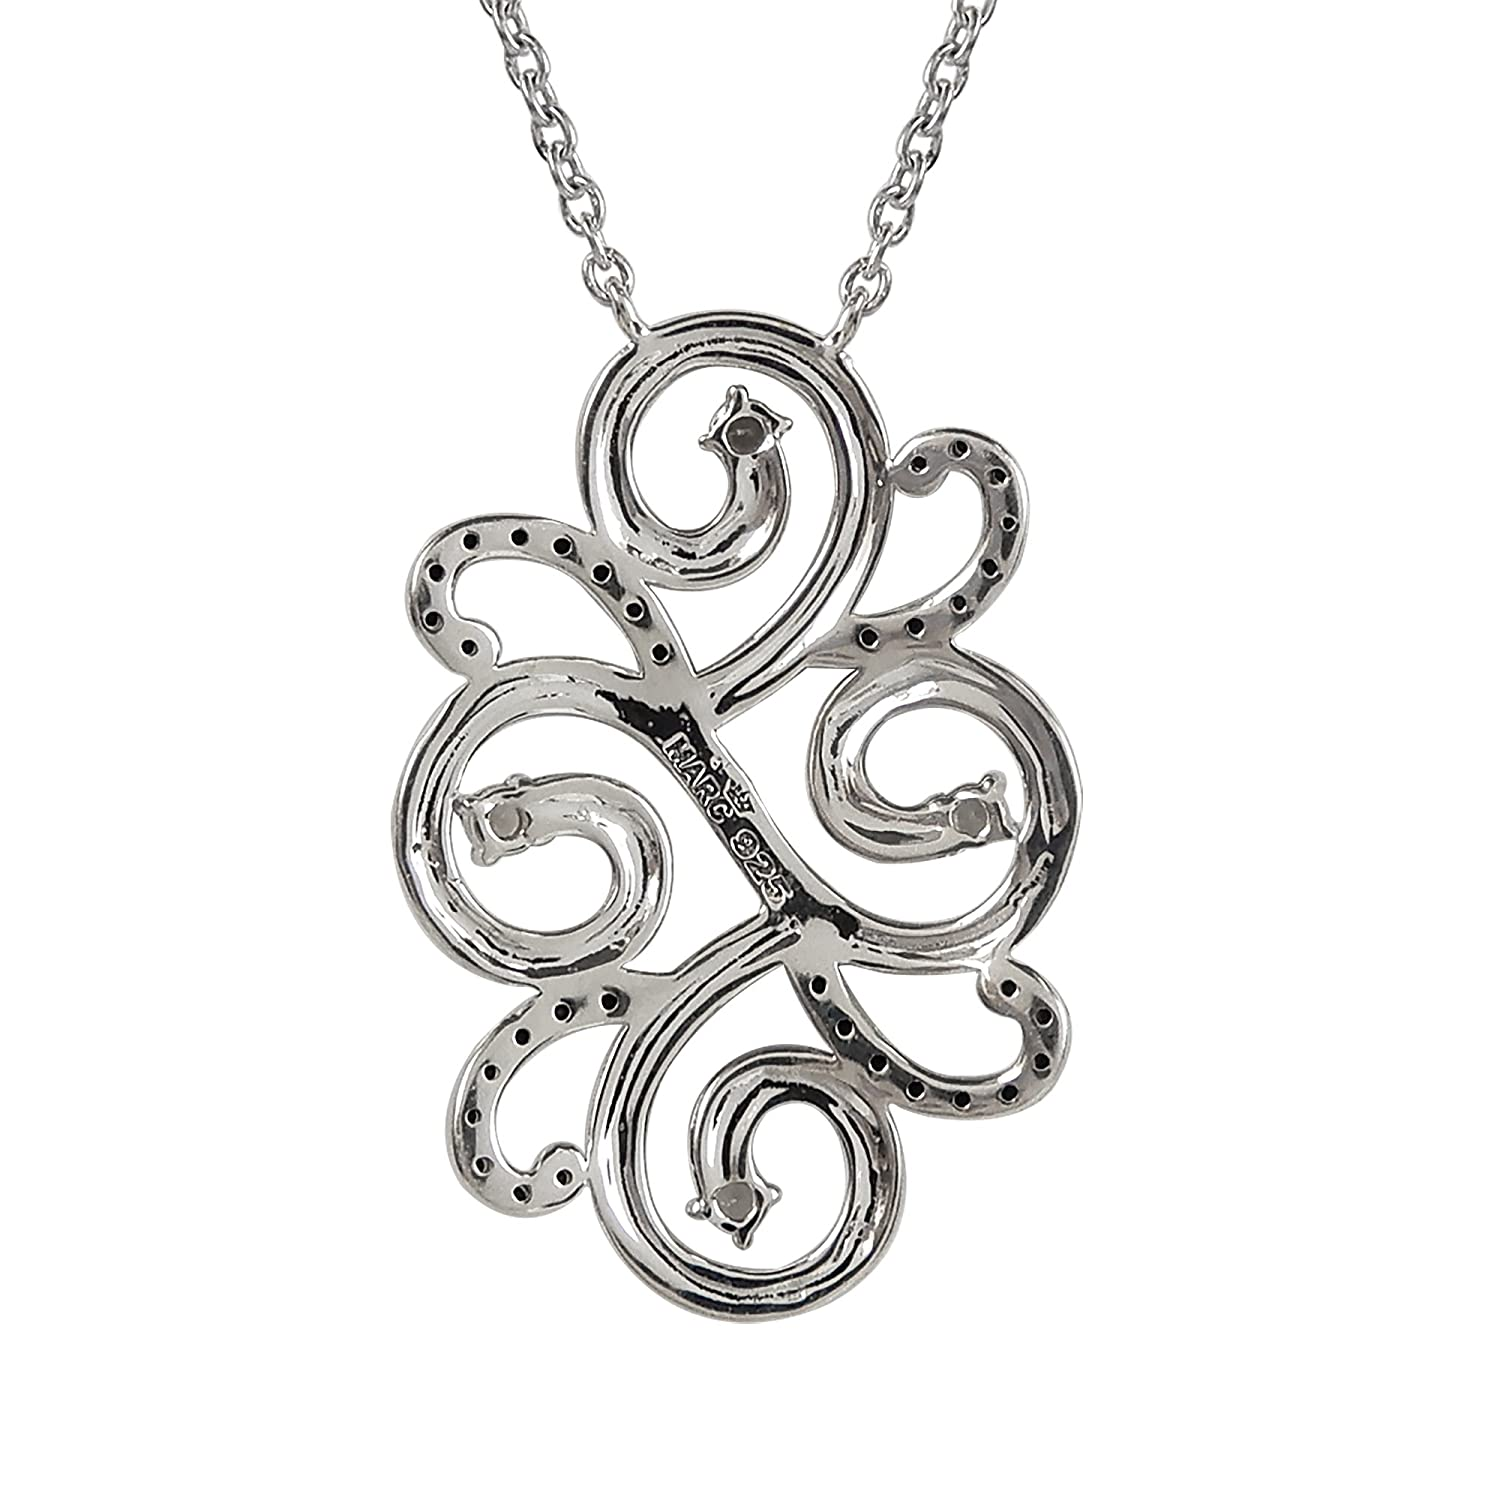 Aura by TJM Sterling Silver 0.10 cts Semi Smokey Quartz /& Micropave 0.20 cts Black Spinel /& Marcasite Swirl Pendant 18